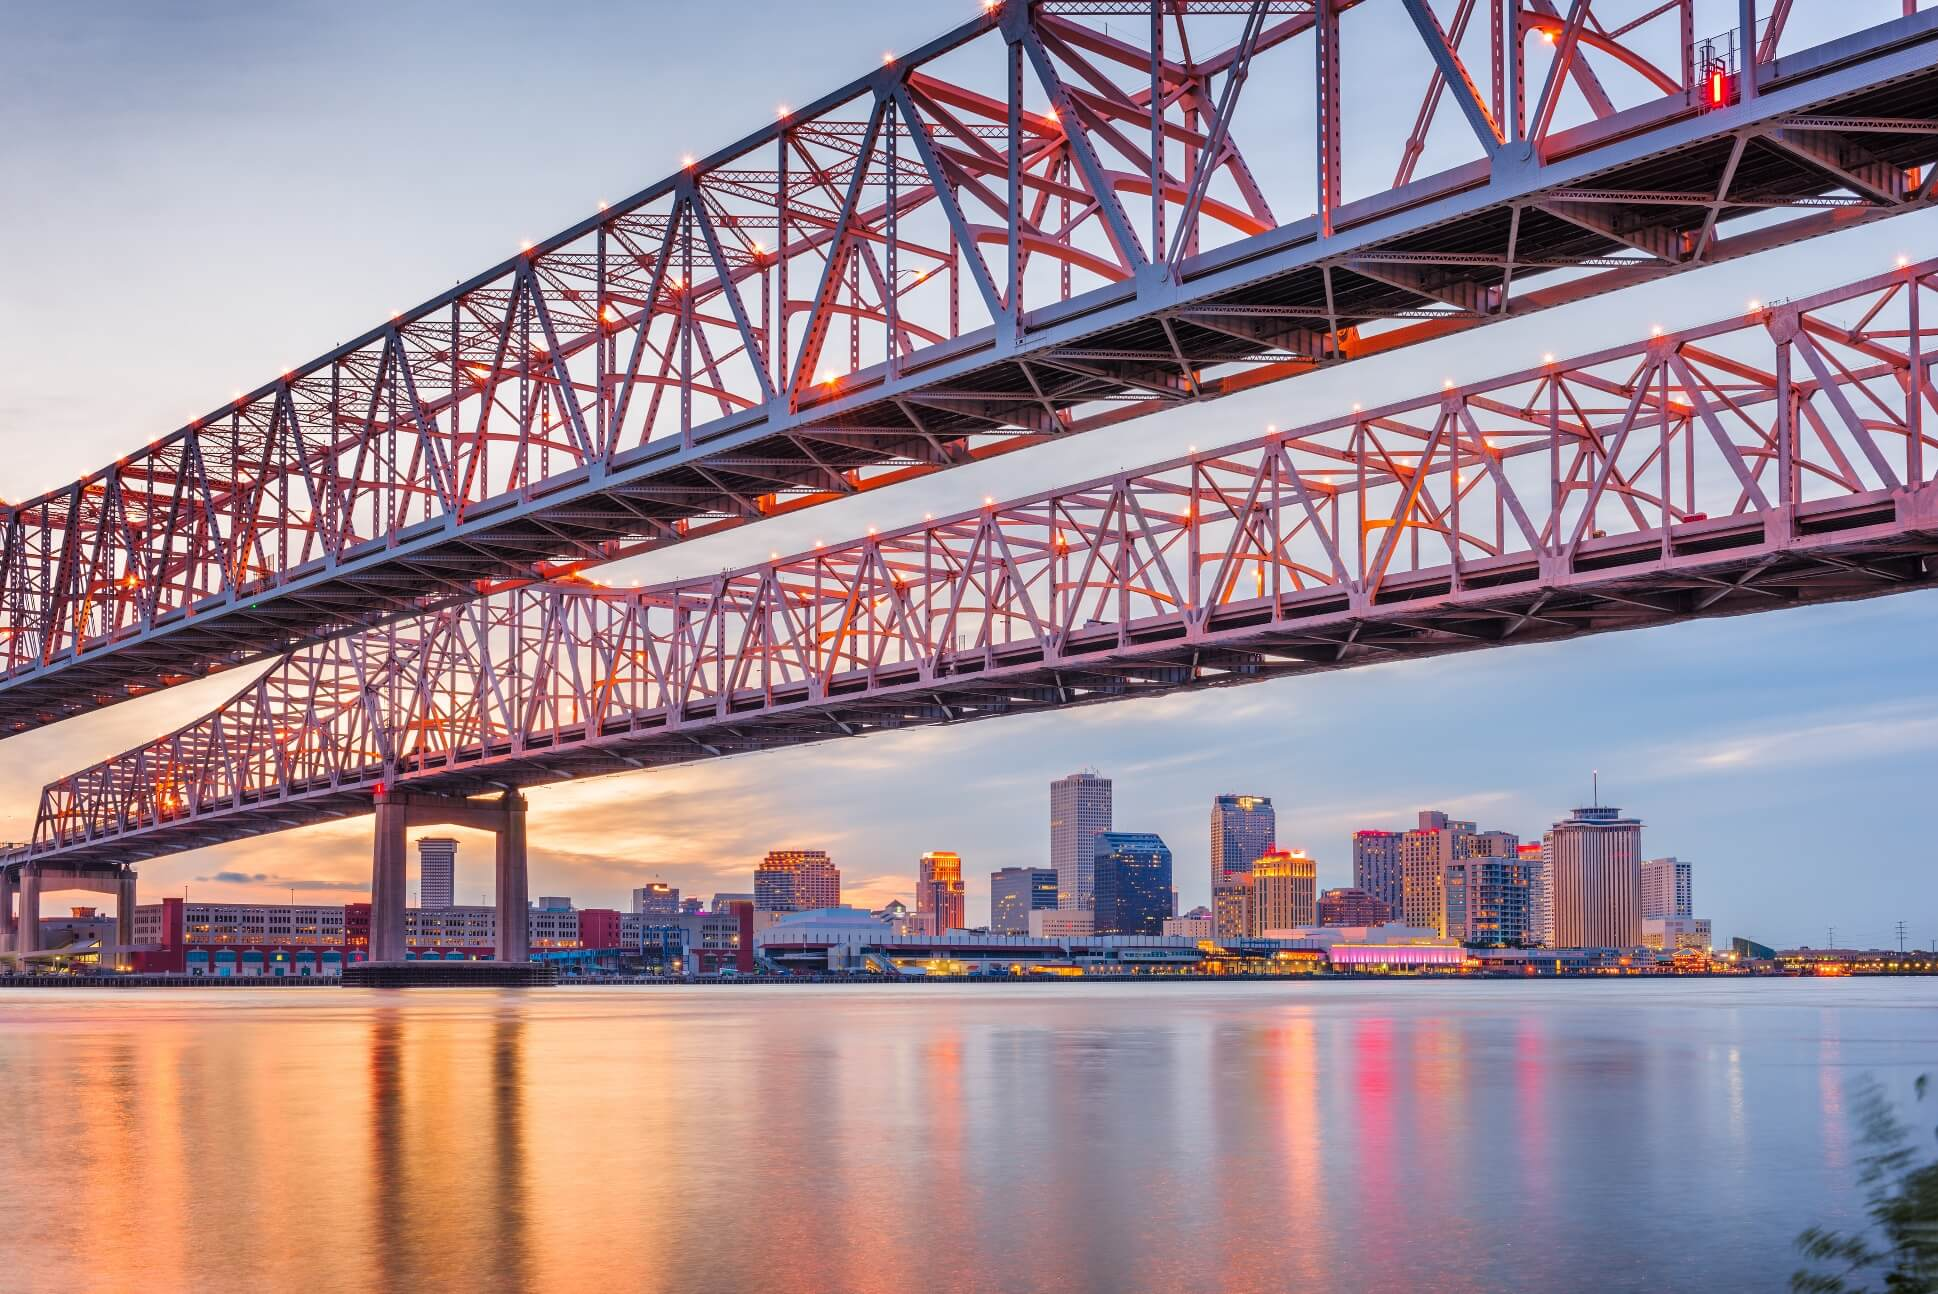 Crescent City Connection bridge in New Orleans